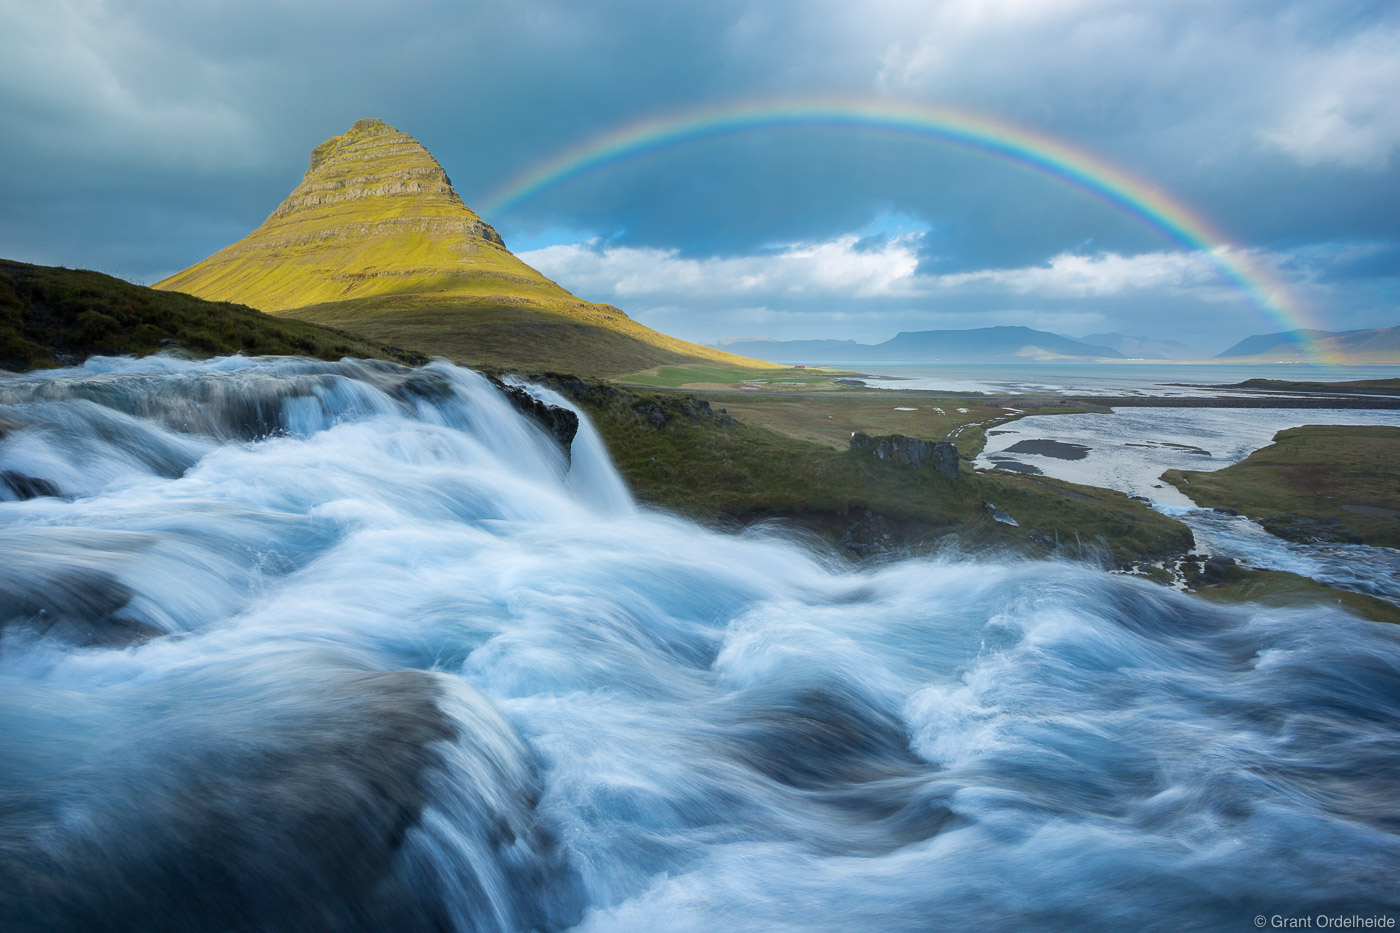 A rainbow over a waterfall and Kirkjufell mountain on theSnæfellsnes peninsula in western Iceland.